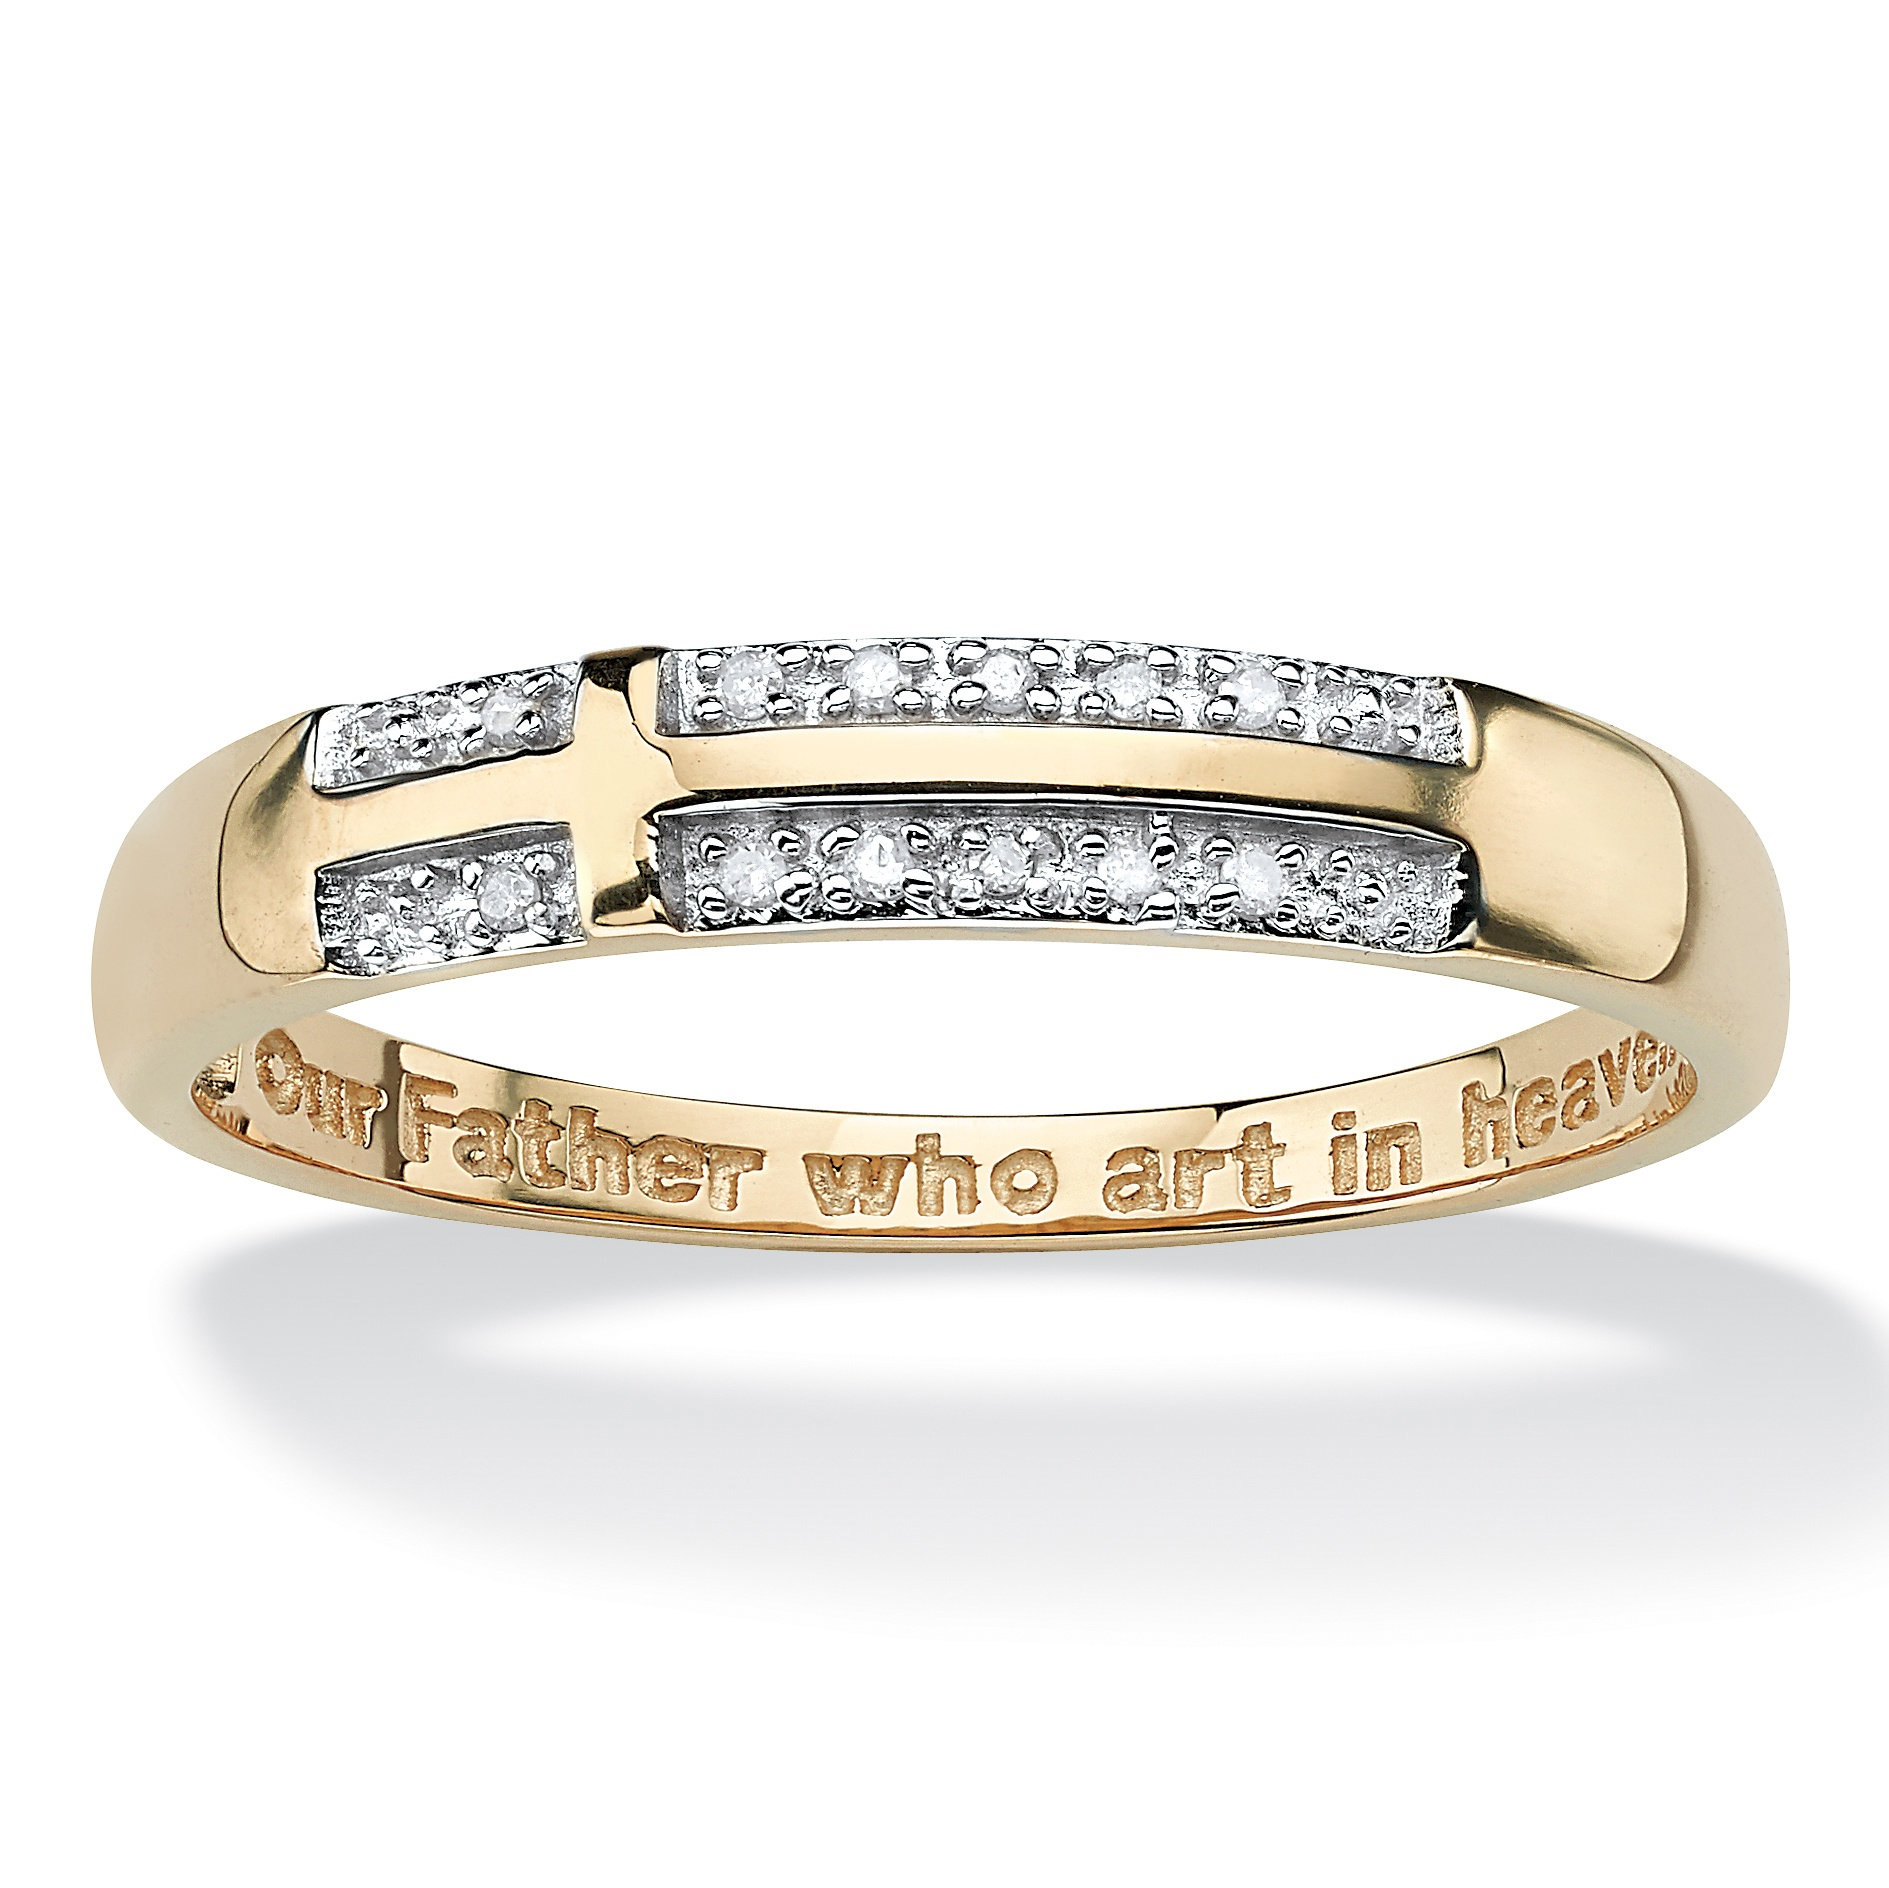 "Men's Diamond Accent ""Lord's Prayer"" Cross Wedding Band in 10k Yellow Gold Sizes 10-16"